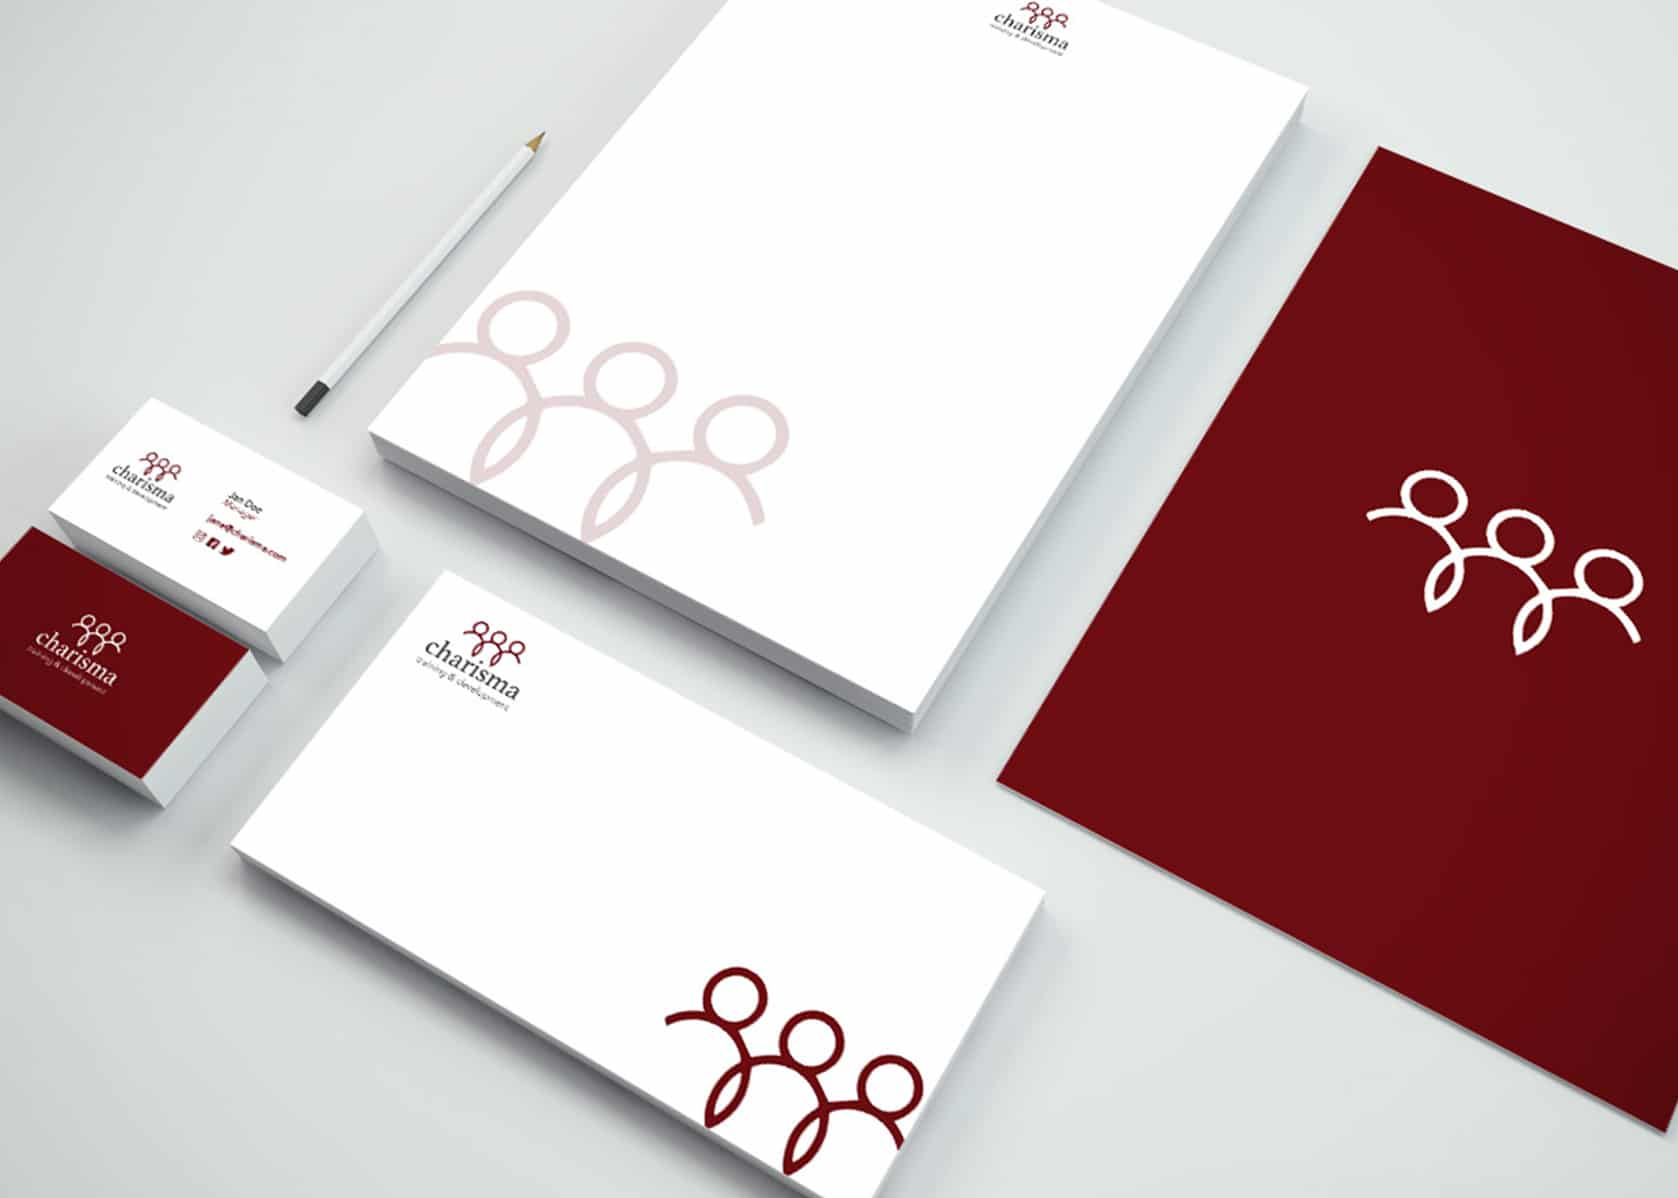 charisma, training brand identity, workshop branding, development branding